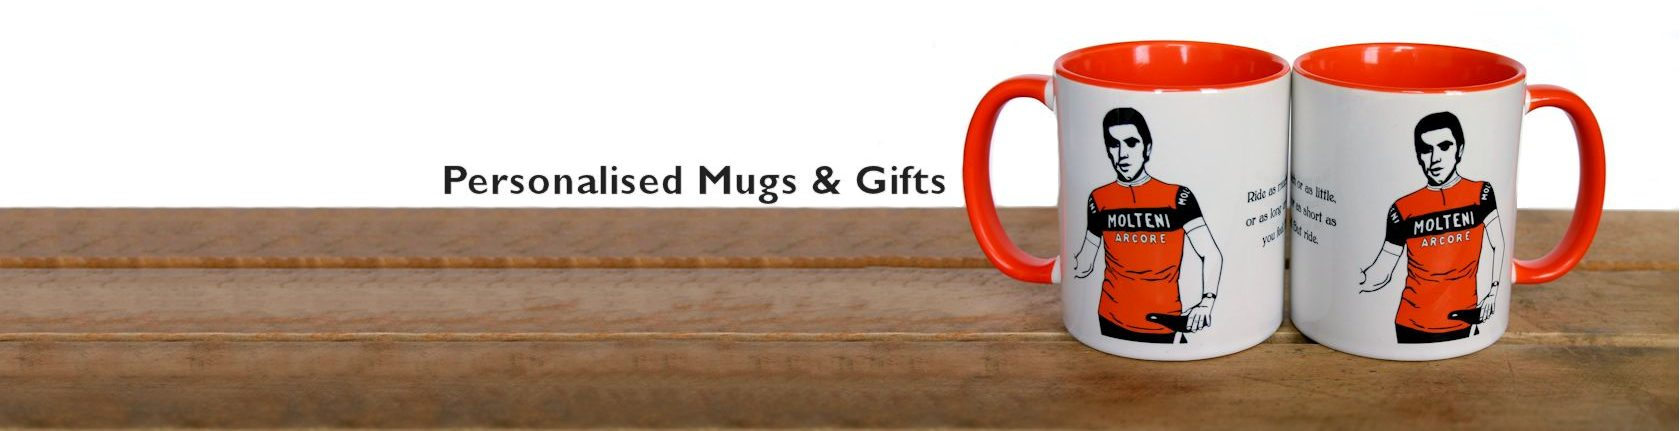 Personalised Mugs & Gifts